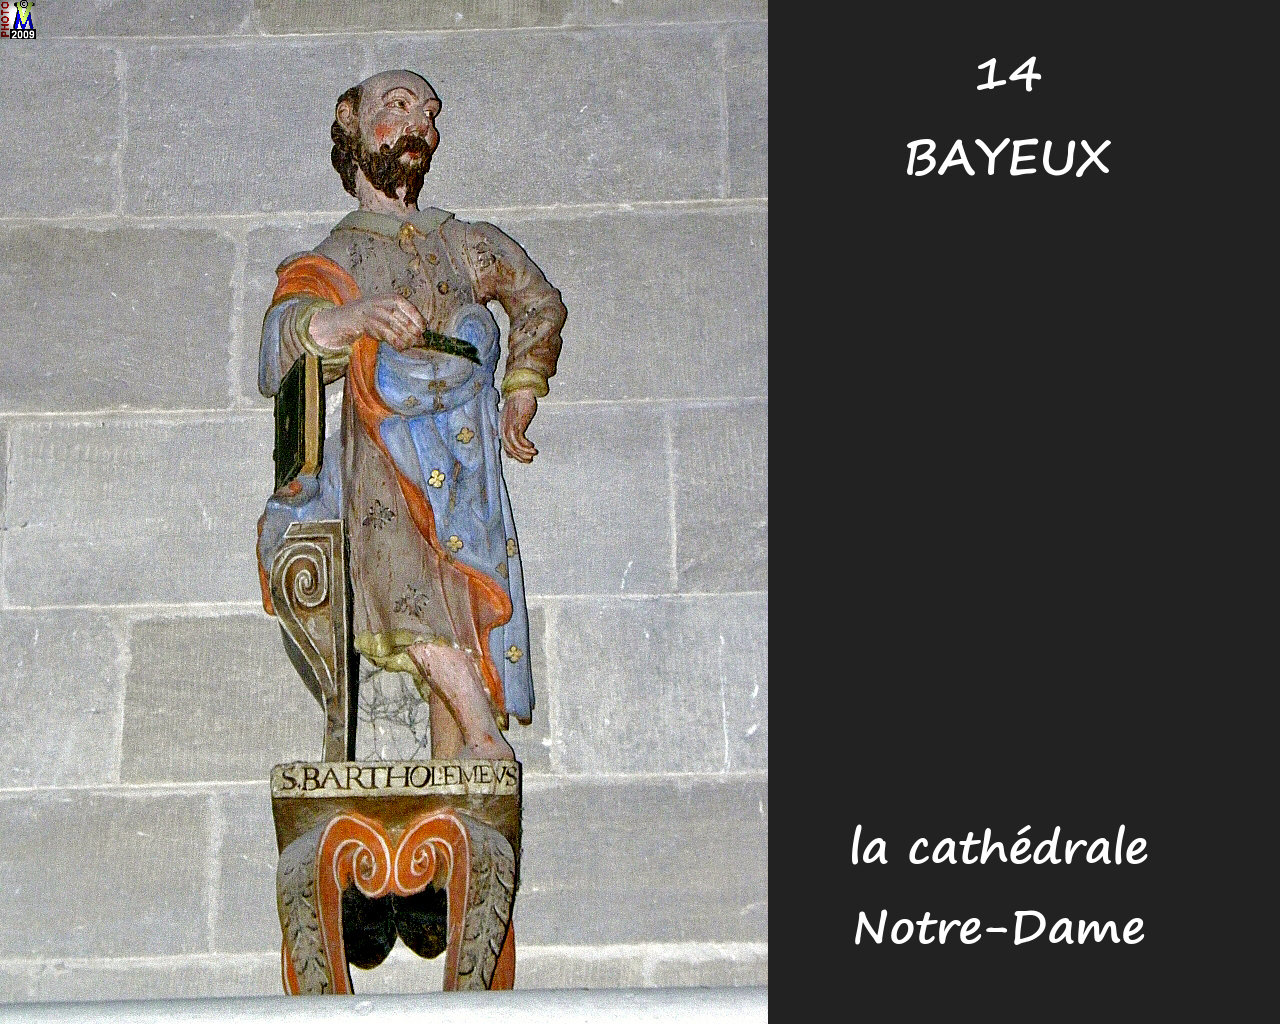 14BAYEUX_cathedrale_254.jpg